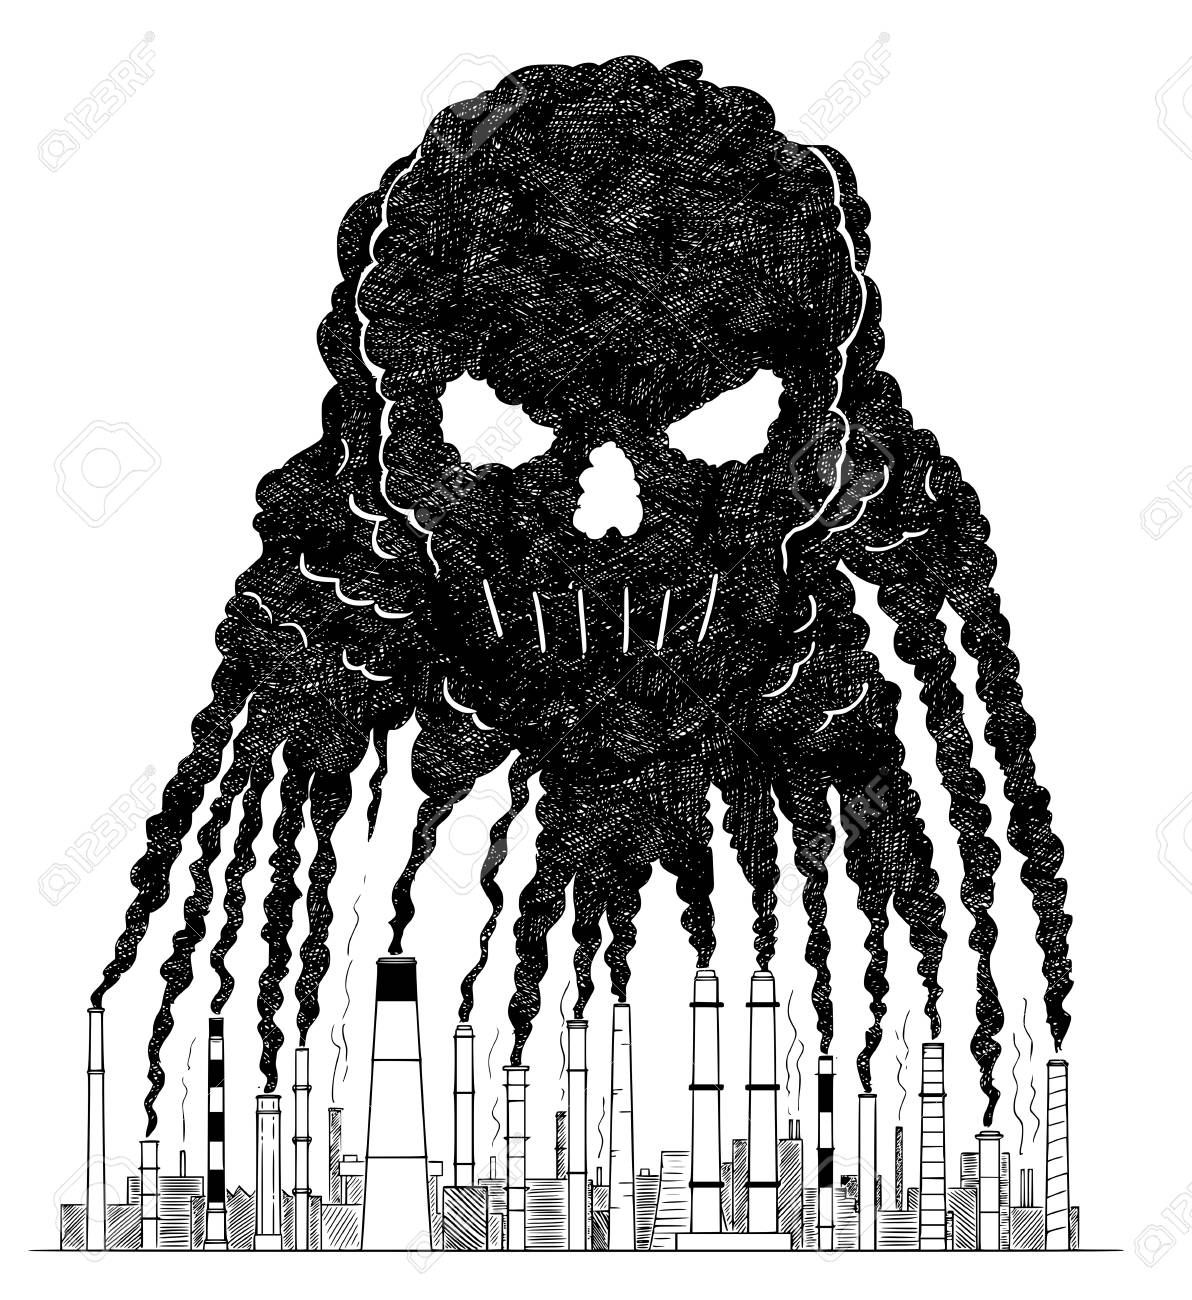 Illustration vector artistic pen and ink drawing illustration of smoke coming from industry or factory smokestacks or chimneys creating human skull shape